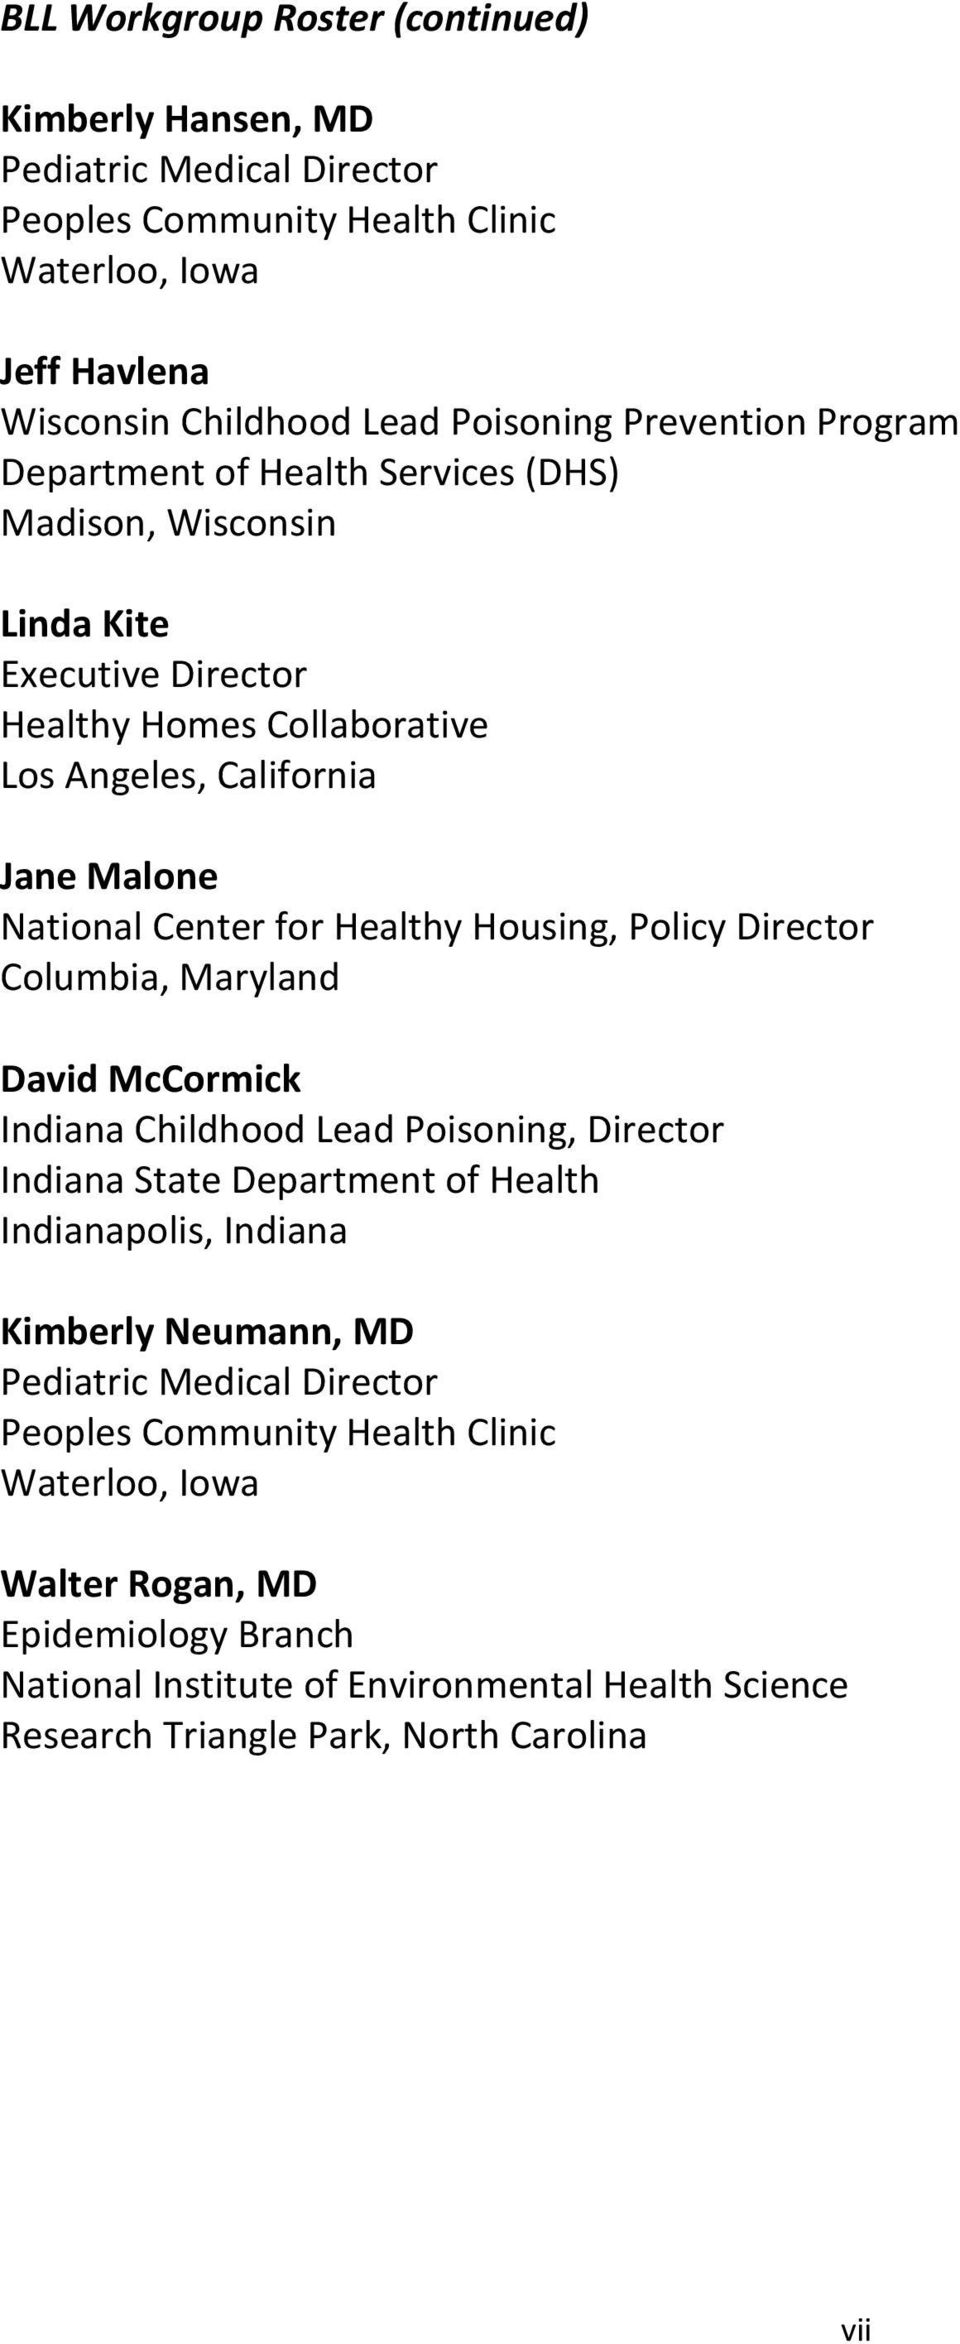 Housing, Policy Director Columbia, Maryland David McCormick Indiana Childhood Lead Poisoning, Director Indiana State Department of Health Indianapolis, Indiana Kimberly Neumann, MD